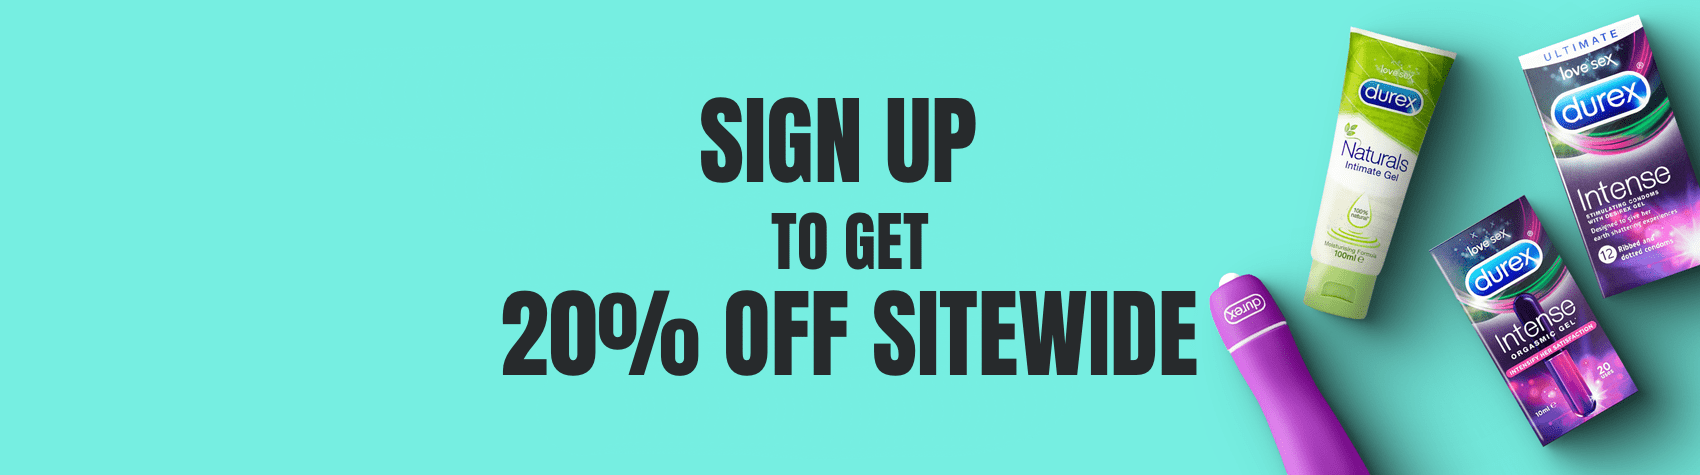 Sign up to get 20 OFF sitewide